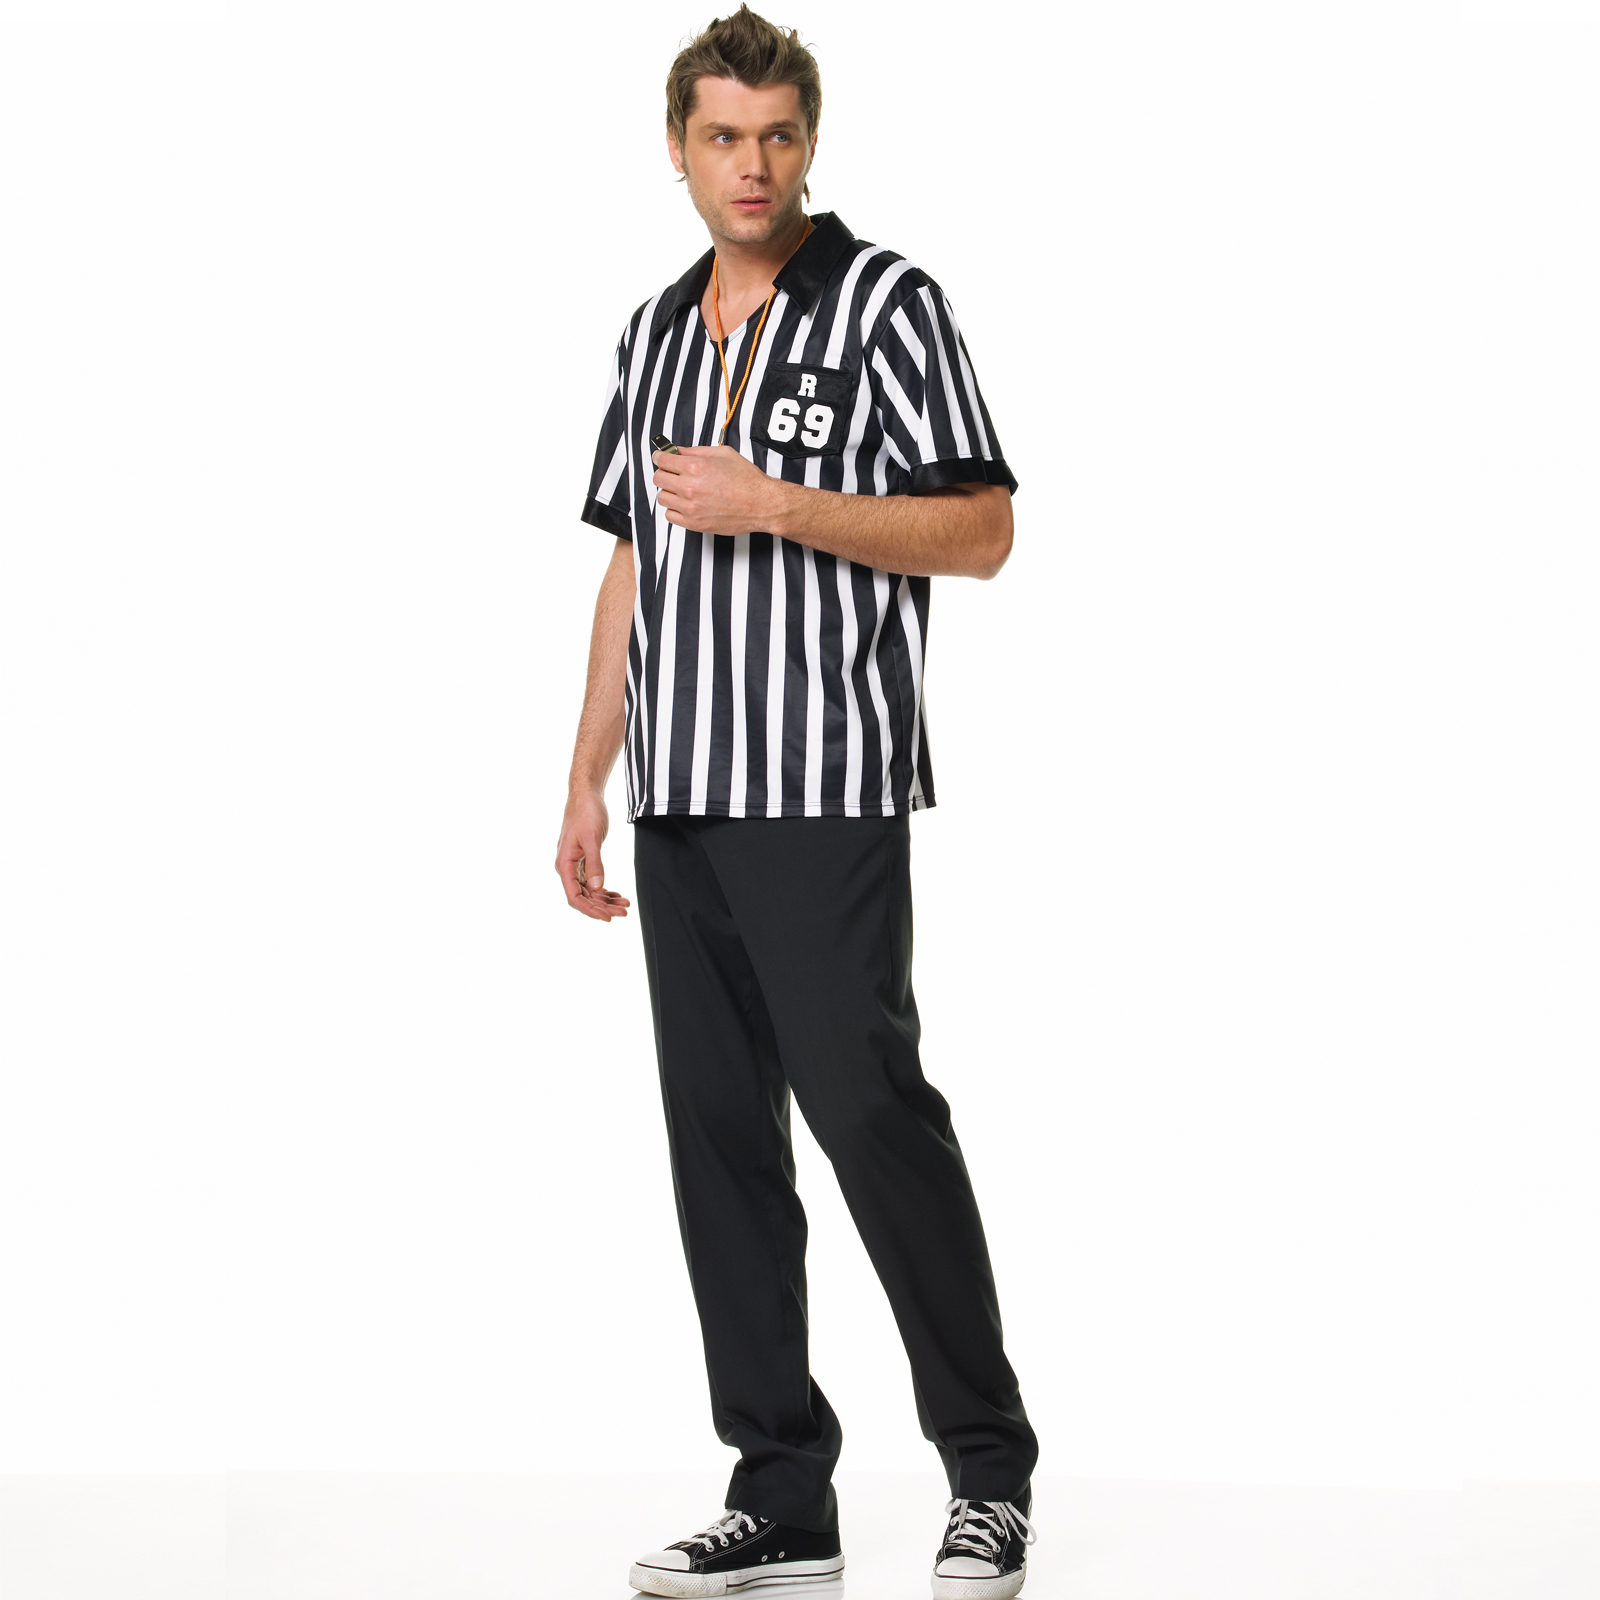 Referee Shirt Adult Costume  sc 1 st  Rookie Moms & 7 Super Ideas For Mom and Baby Halloween Costumes - Rookie Moms